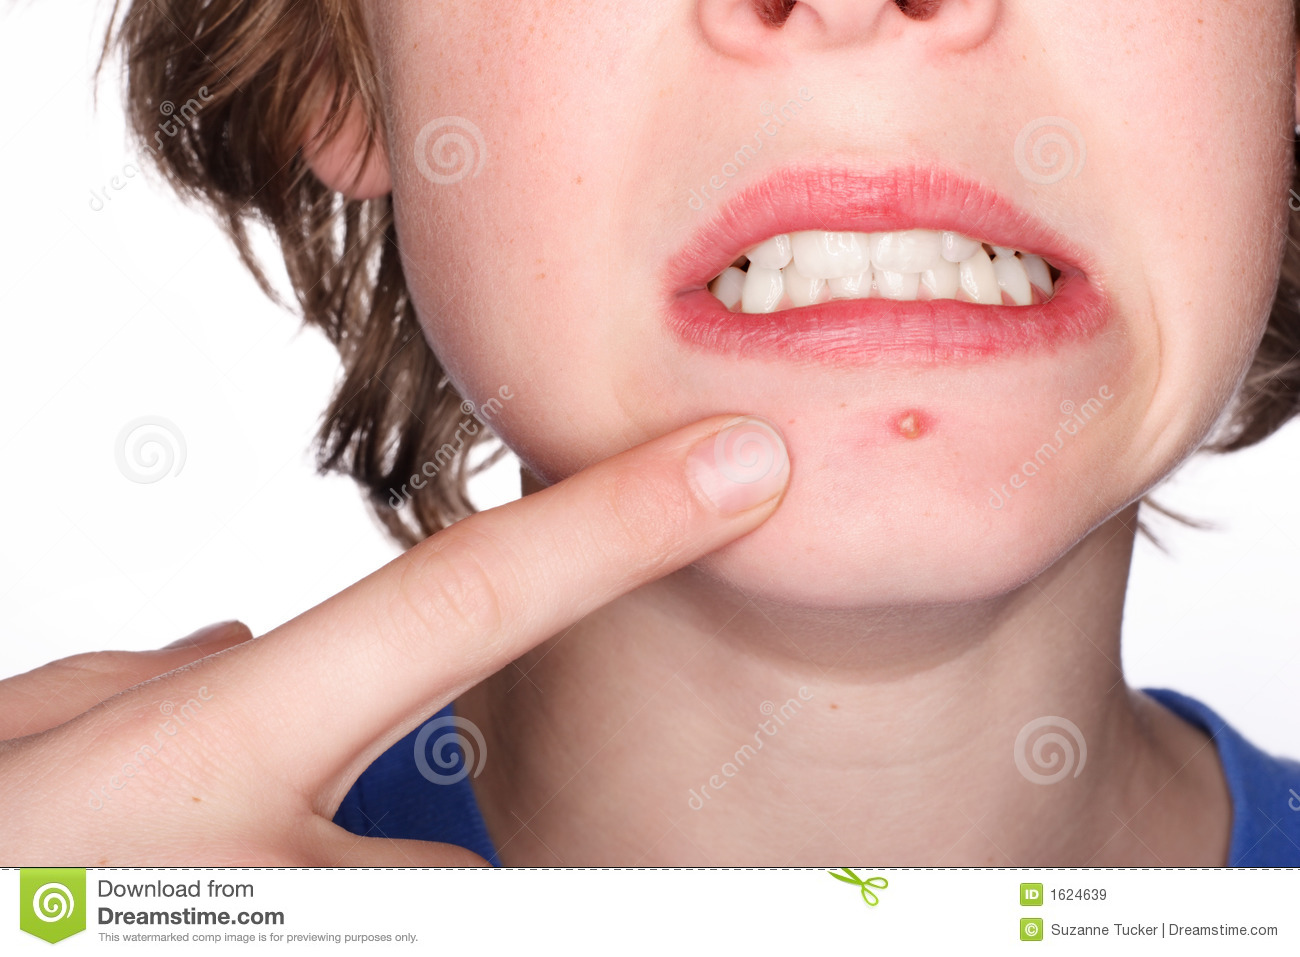 Picking at a Pimple